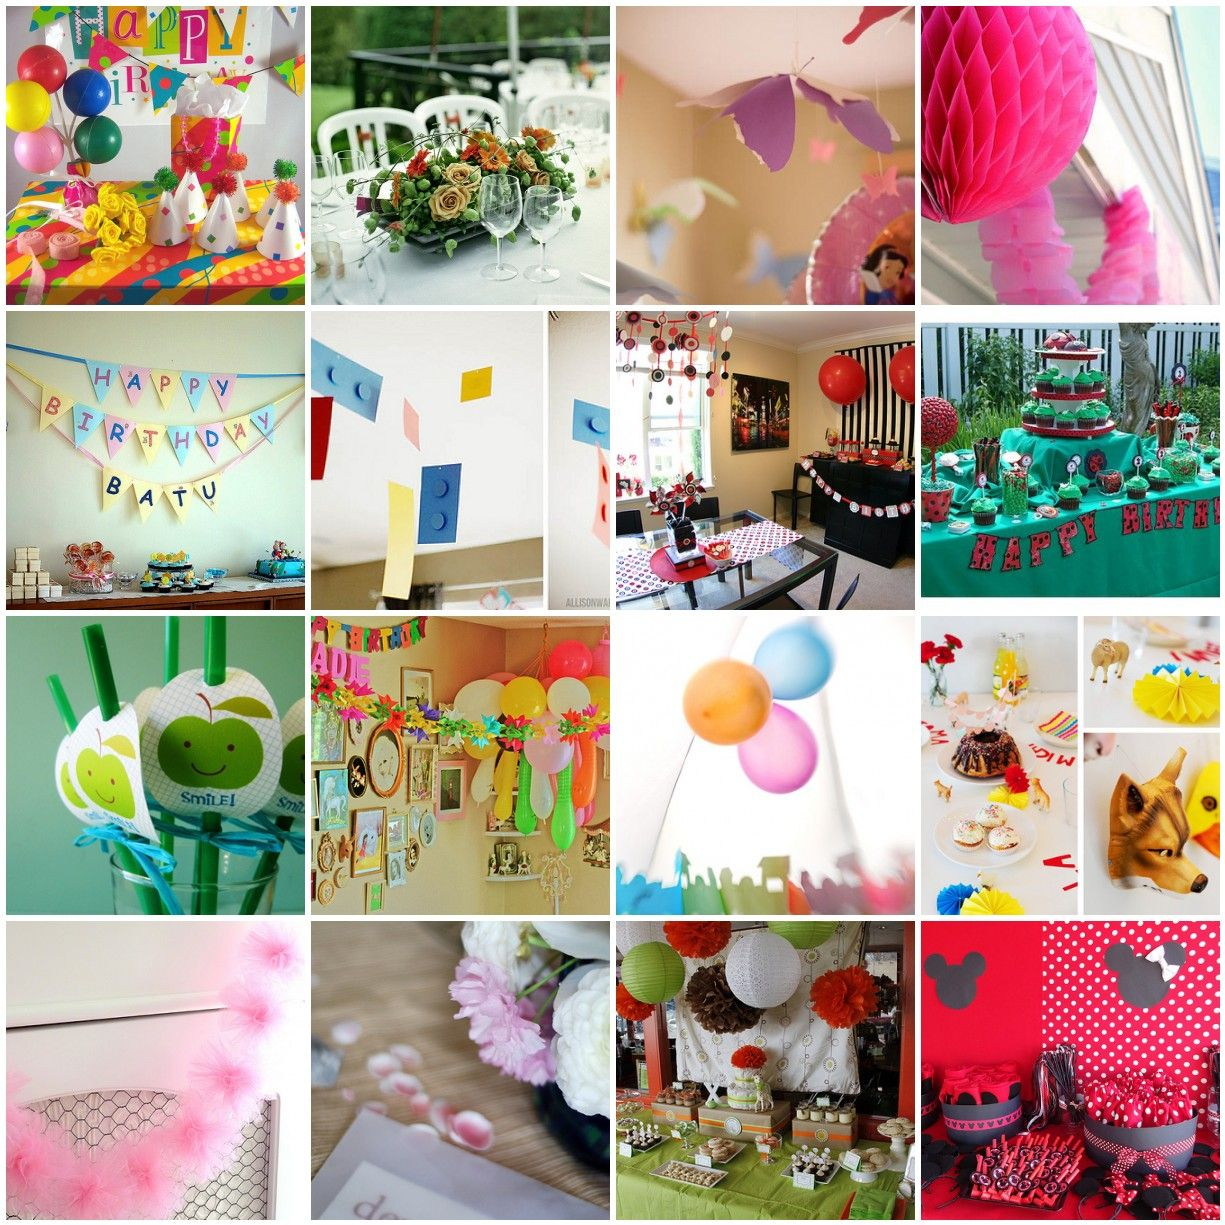 Homemade Party Decorations Decoration Ideas Party Decorations Online Ideas For Party On